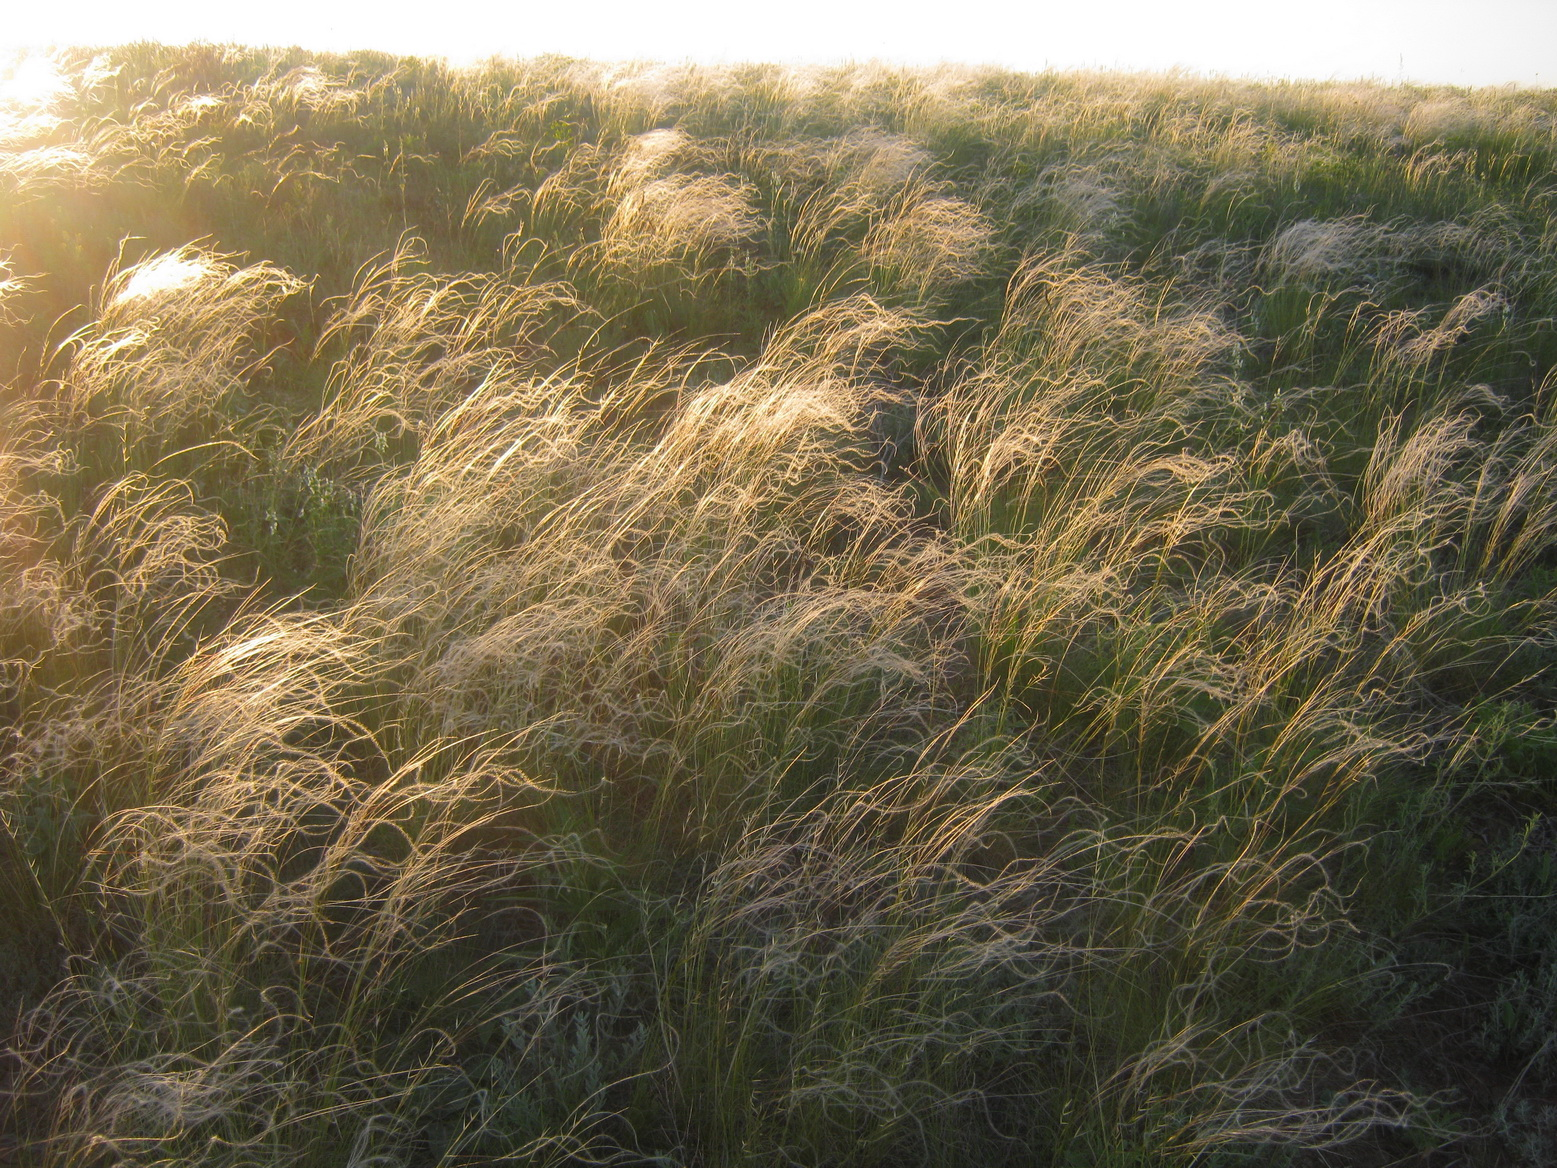 Carpets from a feather grass in the steppe. Oksana Burkovskaya